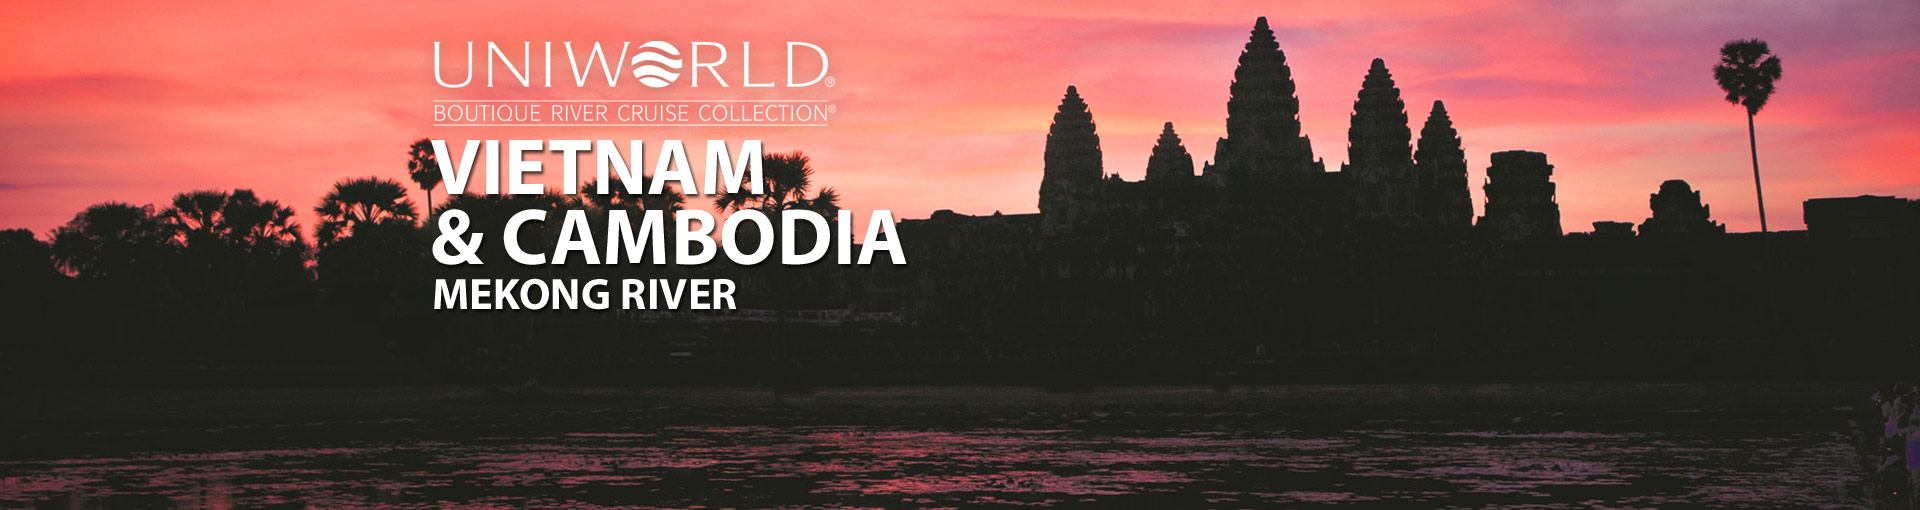 Uniworld River Cruises to Vietnam and Cambodia